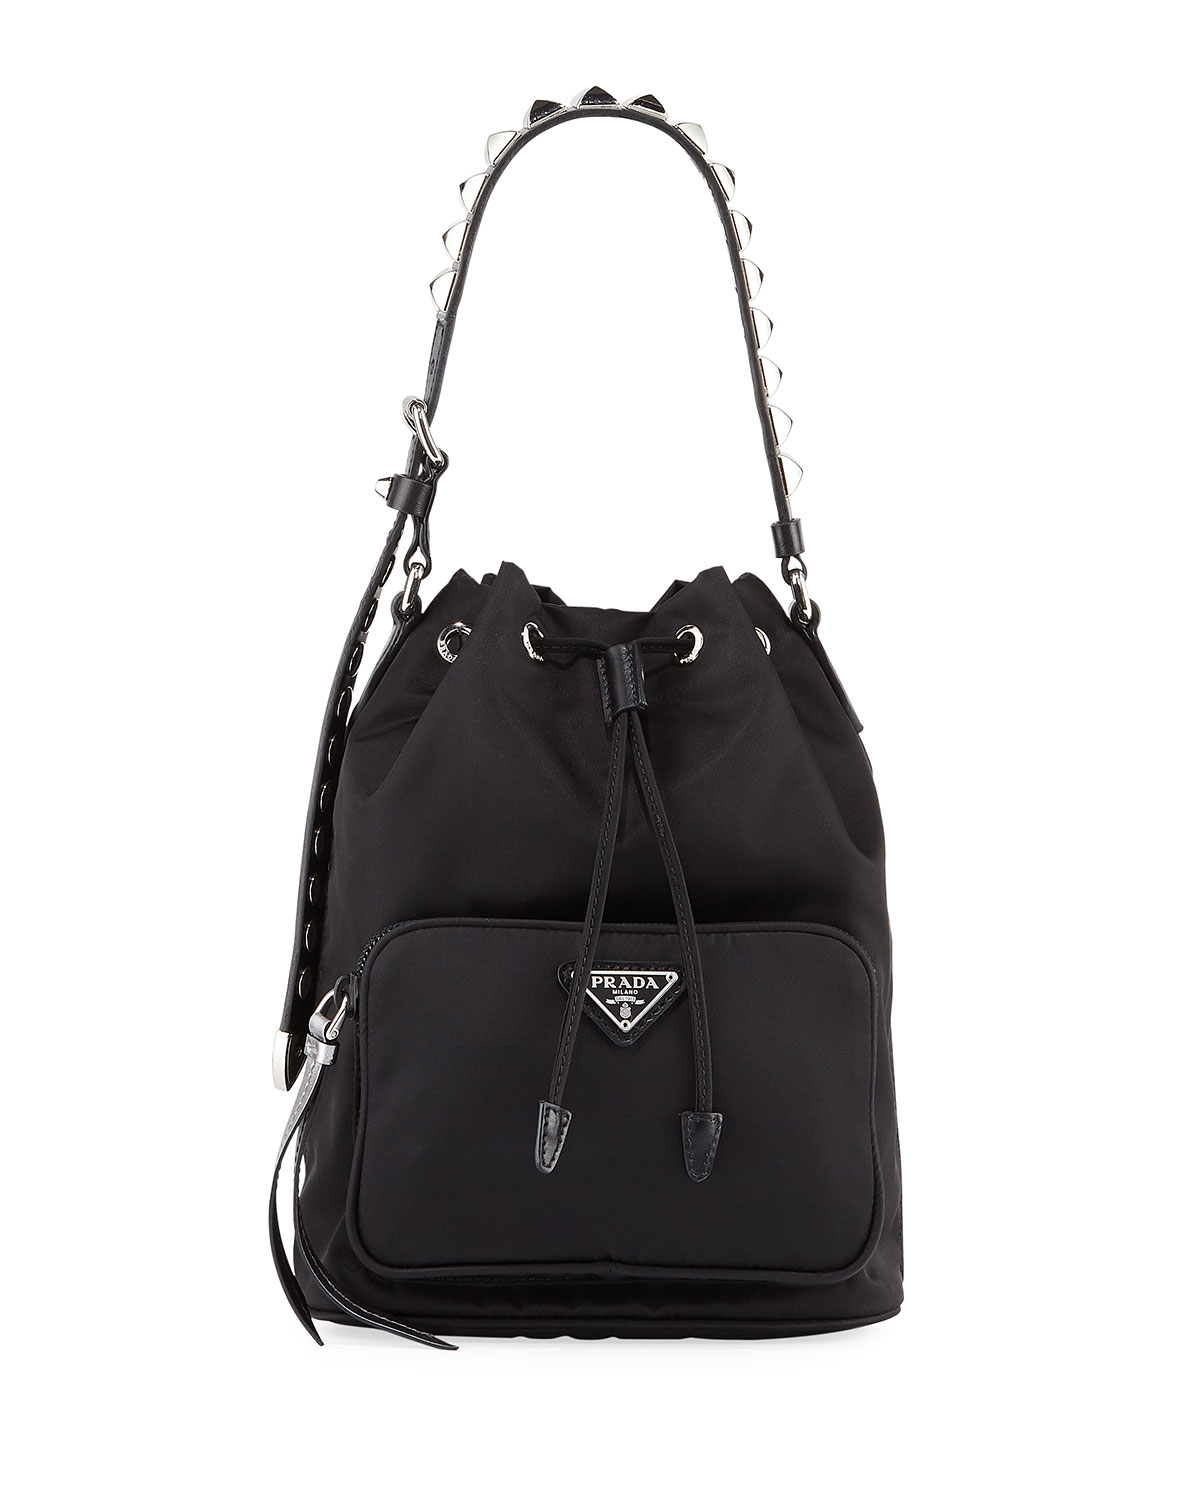 0fa9c10e26b4 Prada Prada Black Nylon Bucket Bag with Studding